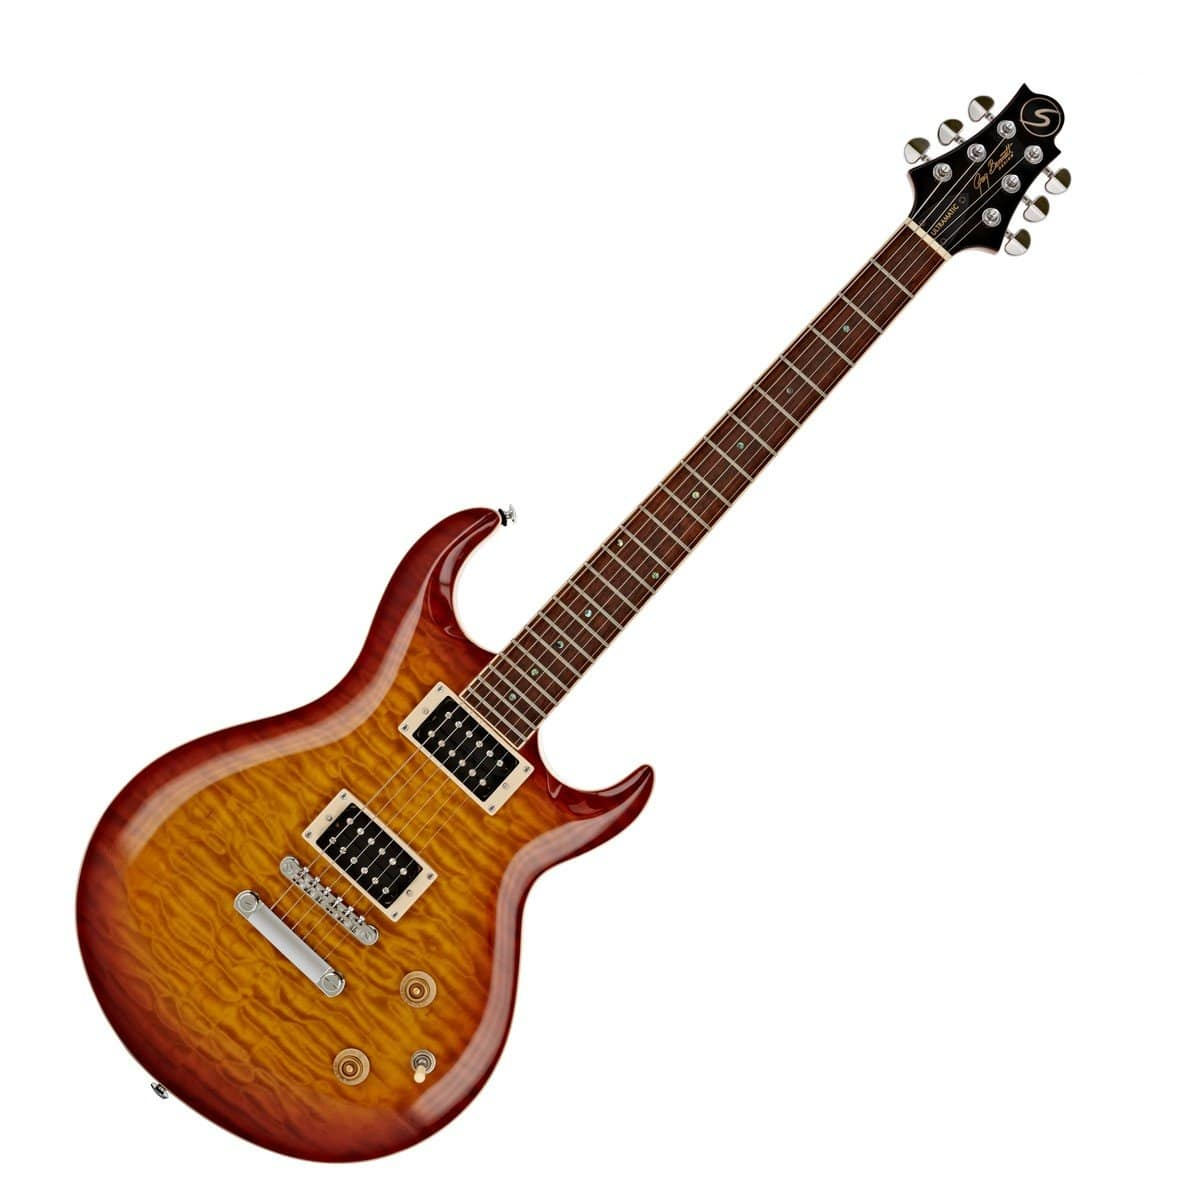 Samick UM-3-VS Greg Bennett Electric Guitar - (Vintage Sunburst/Orange Sunburst)